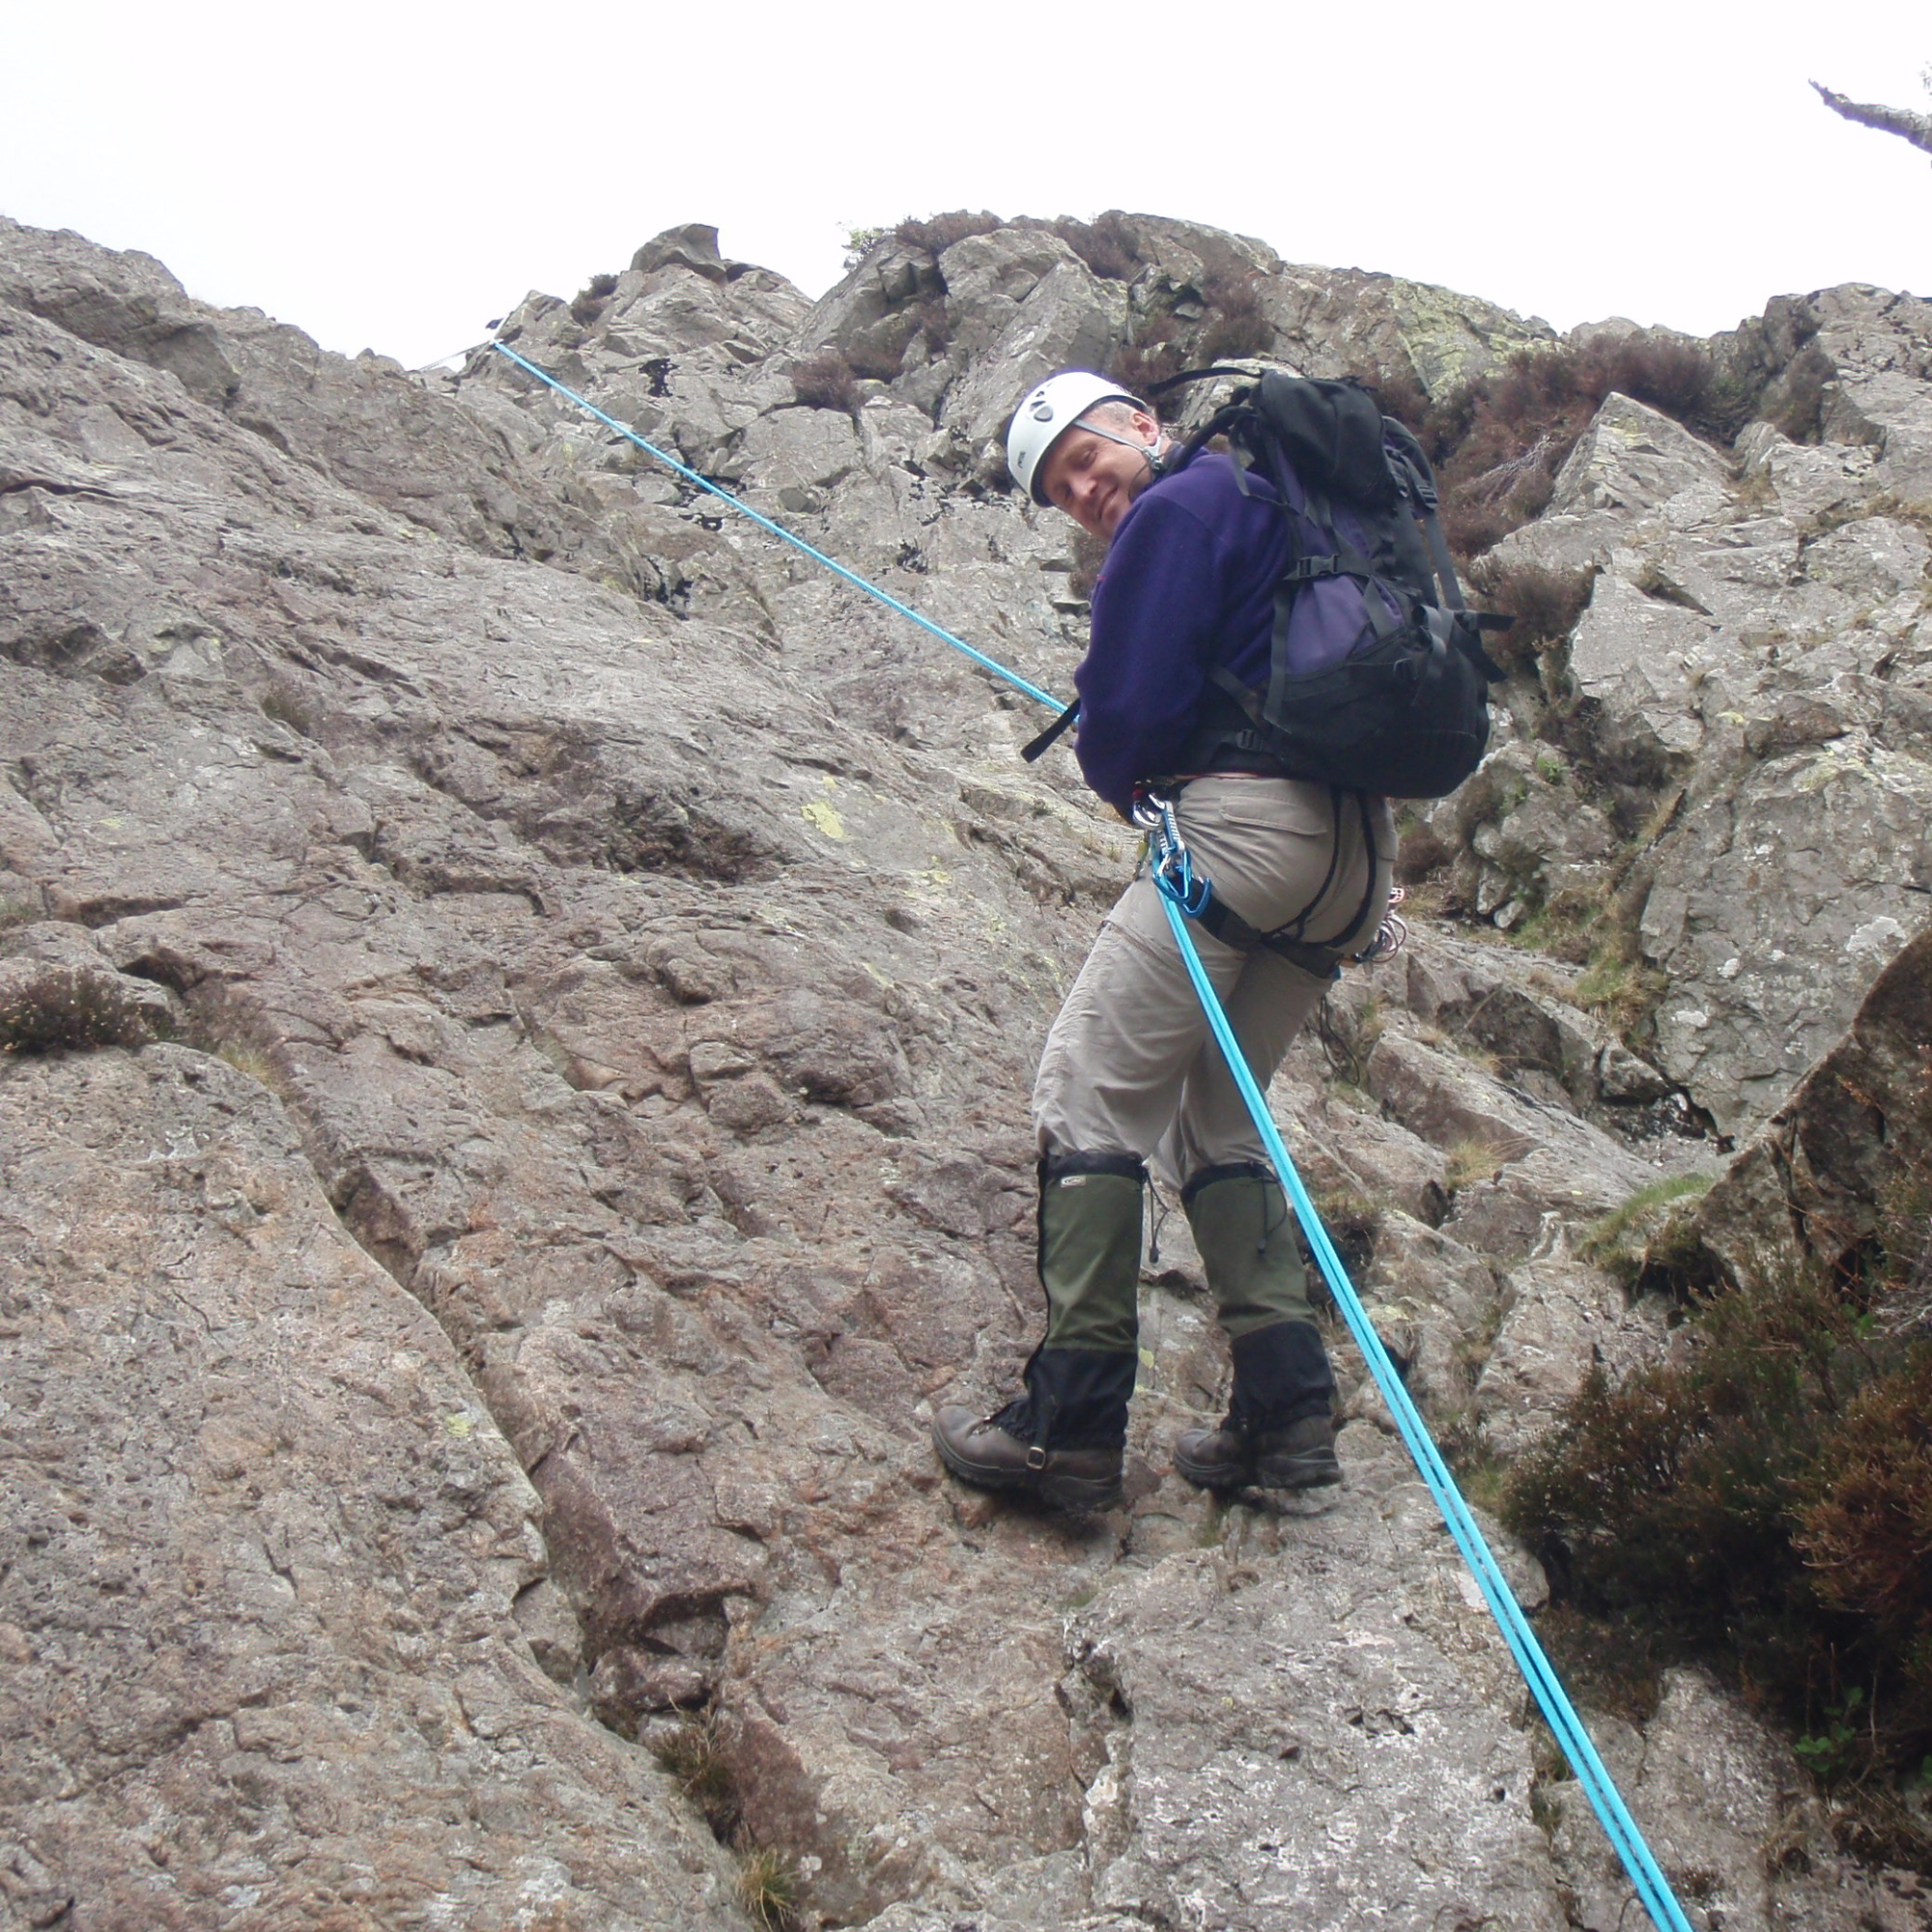 Rope work for scrambling